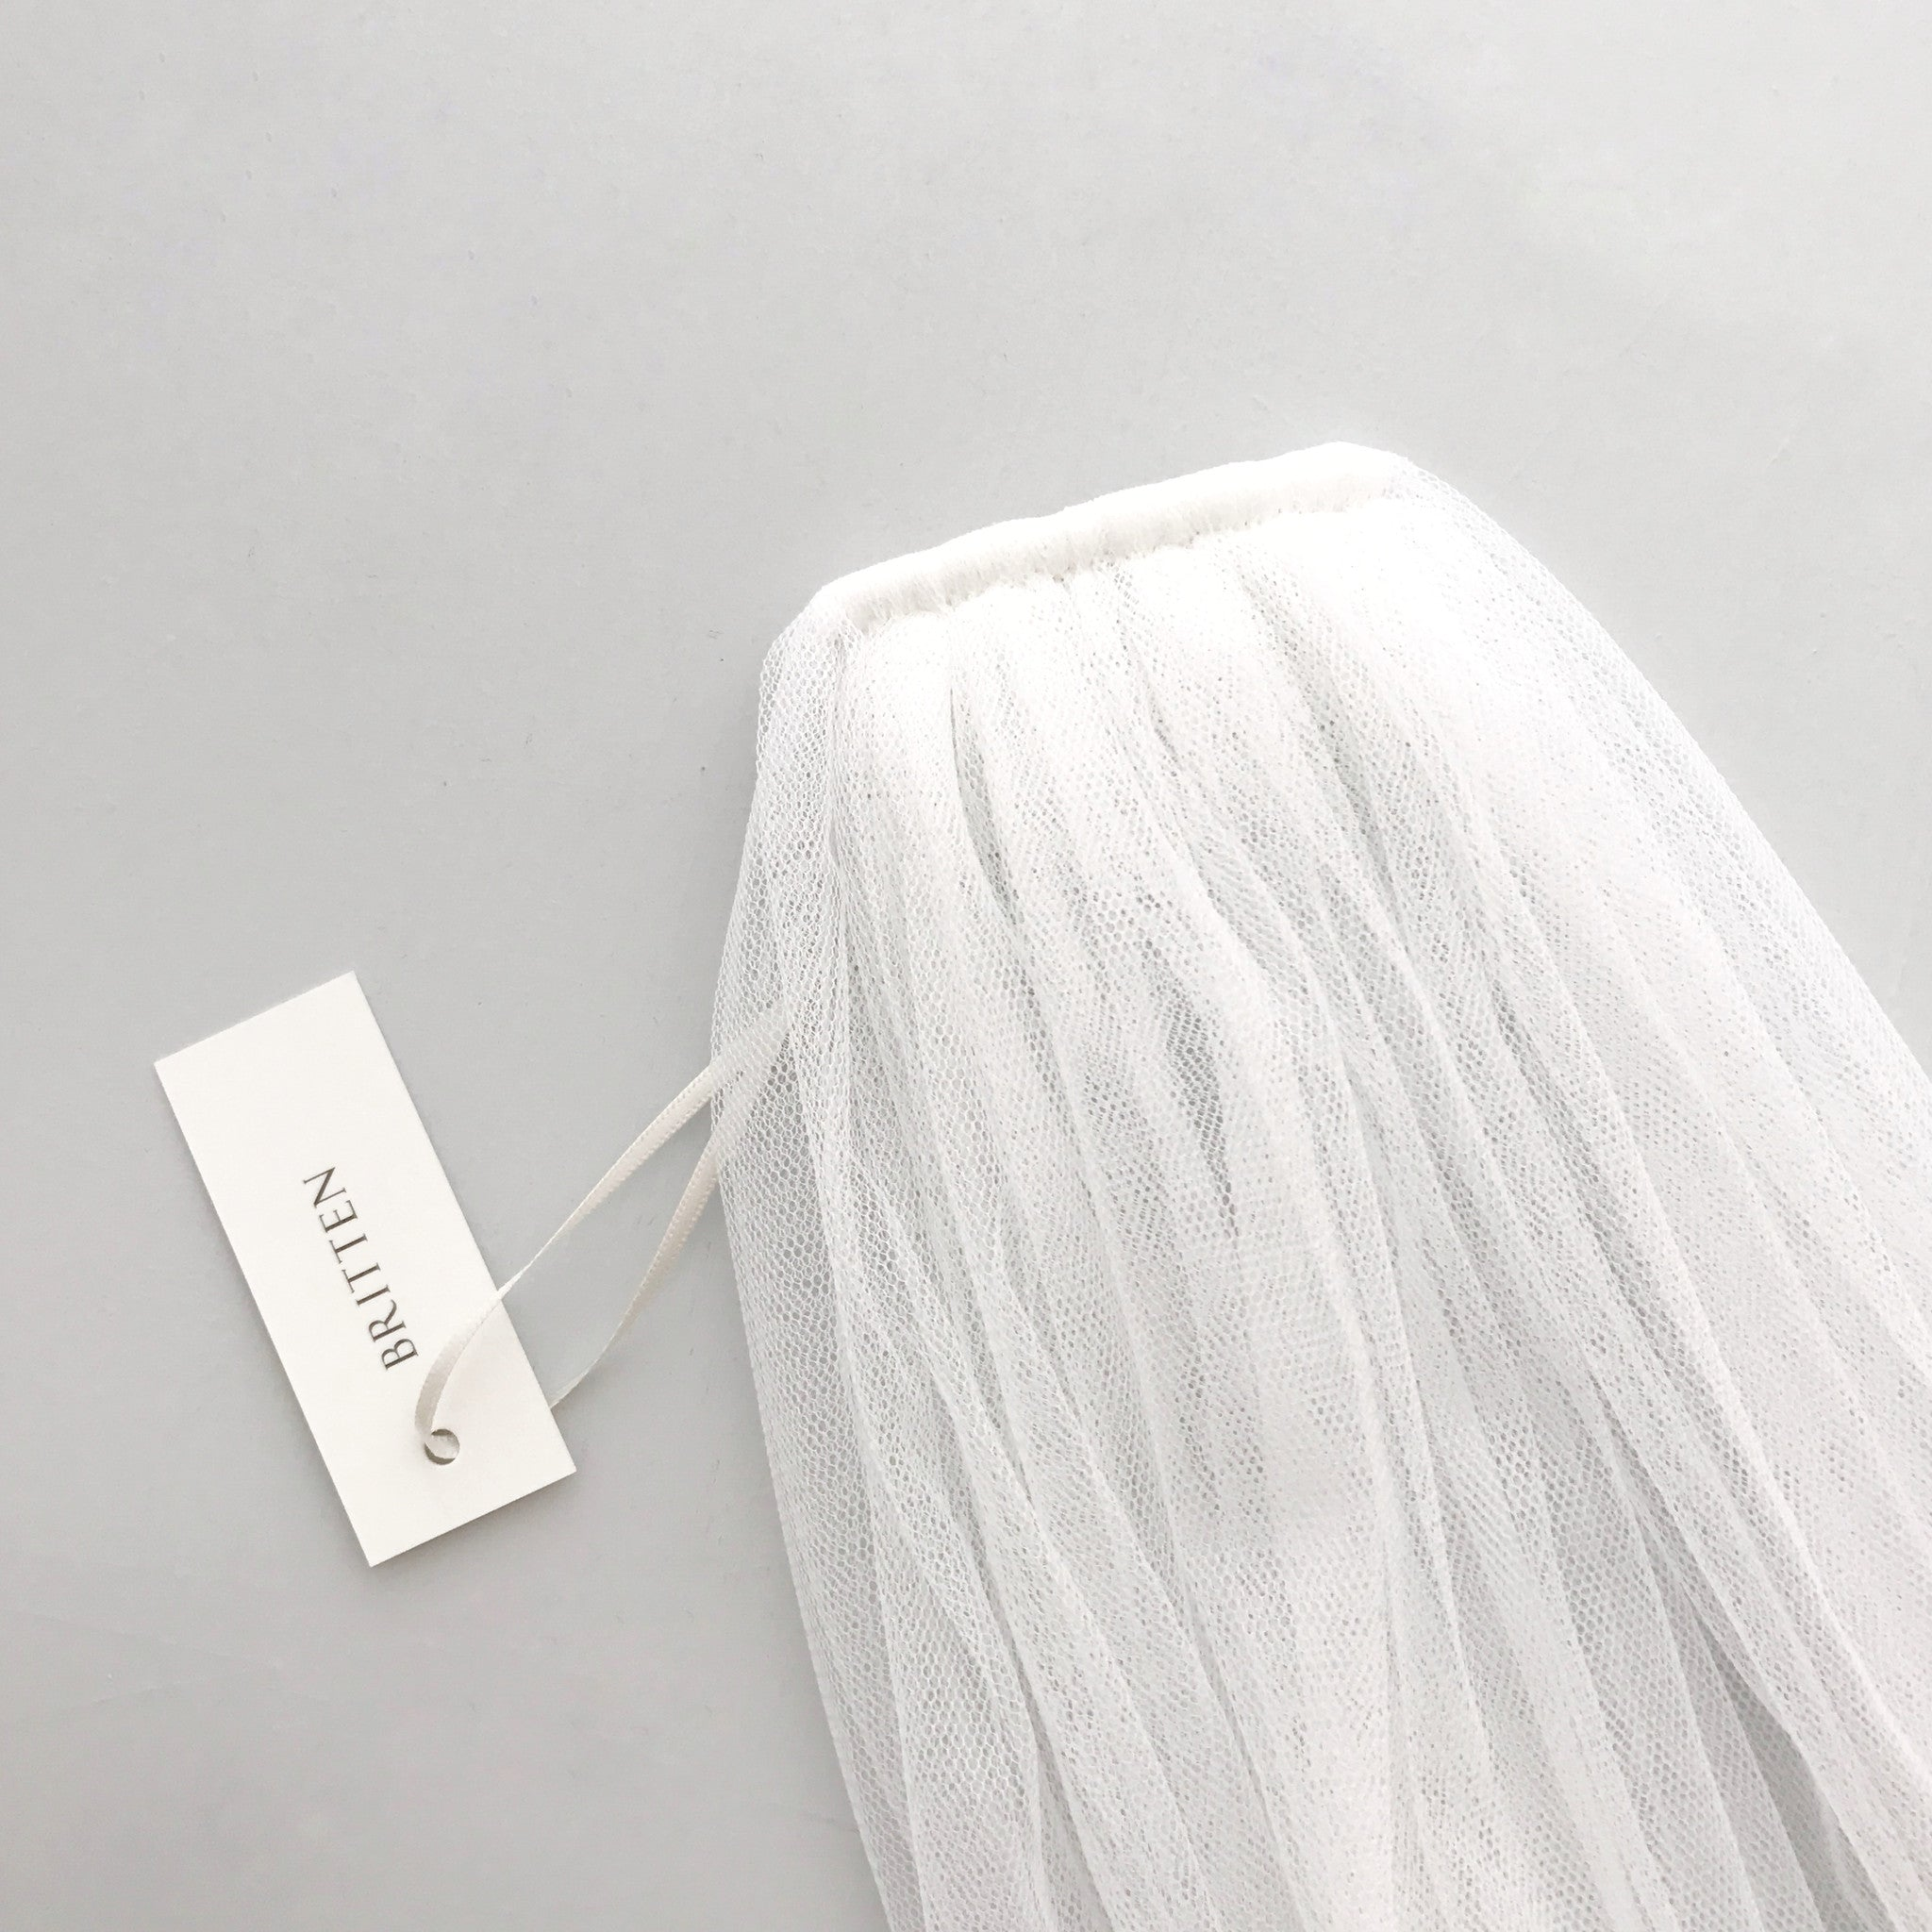 comb attachment for wedding veil